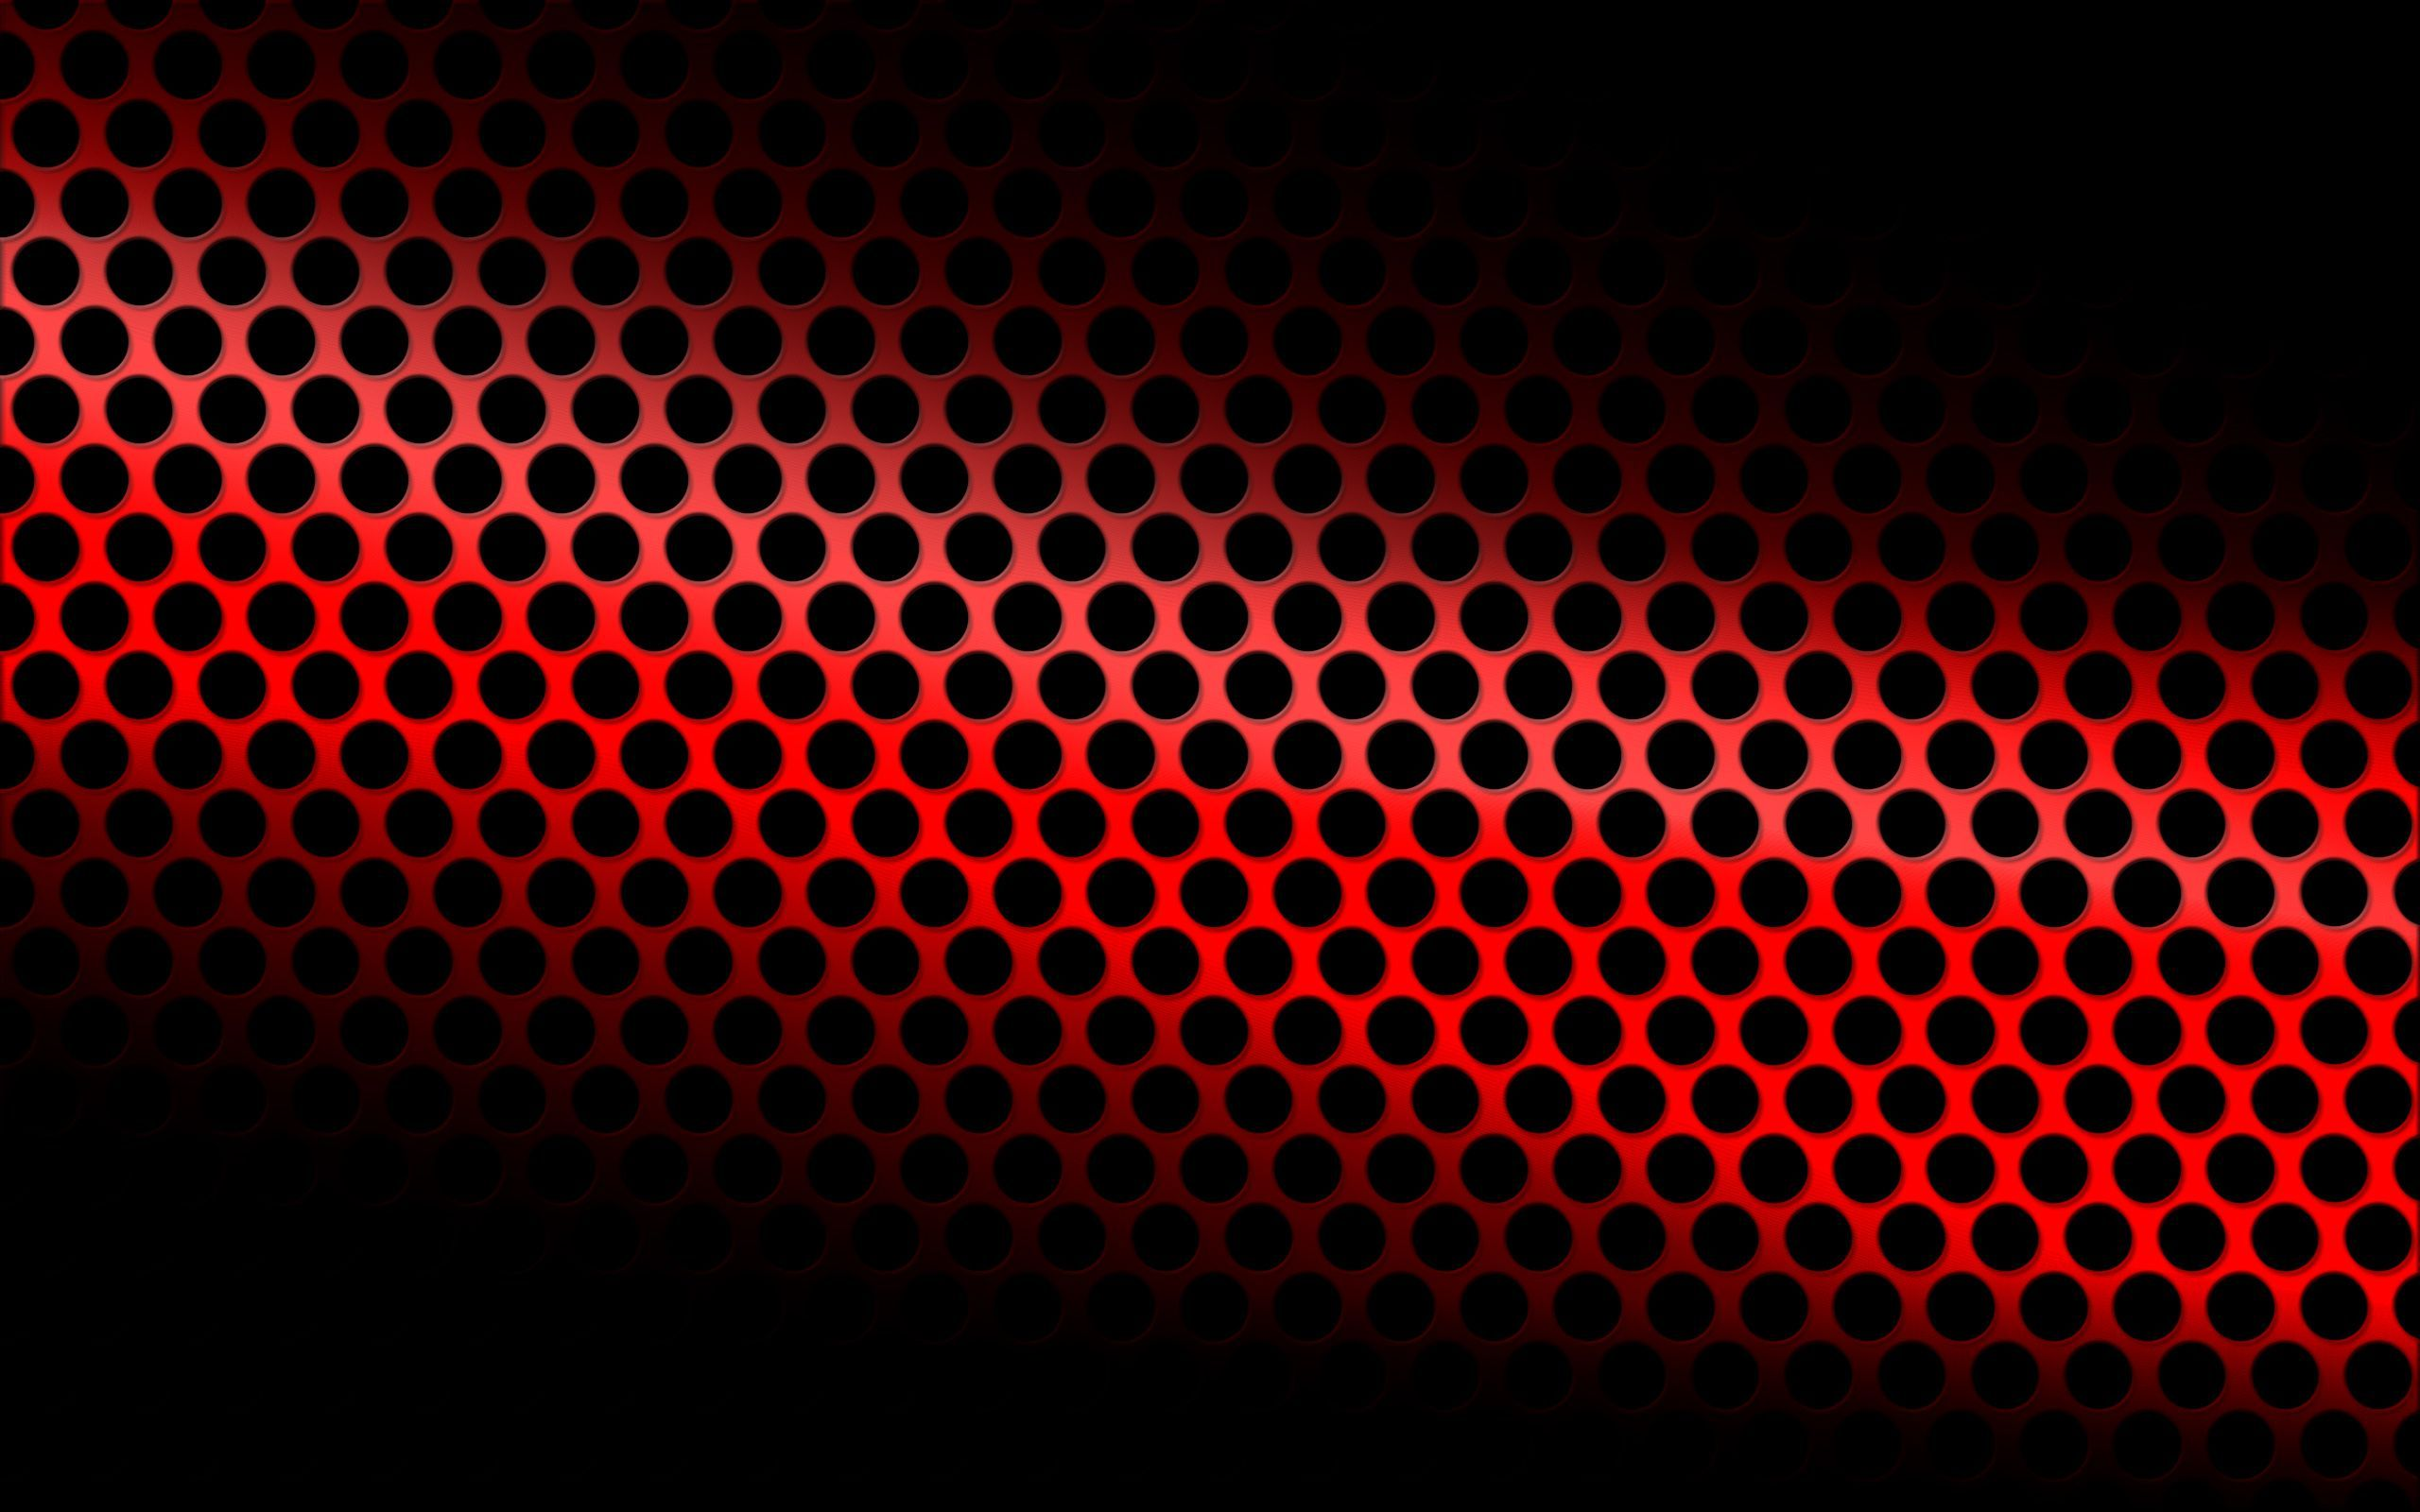 Black And Red Wallpapers HD | HD Wallpapers, Fondos, Imágenes